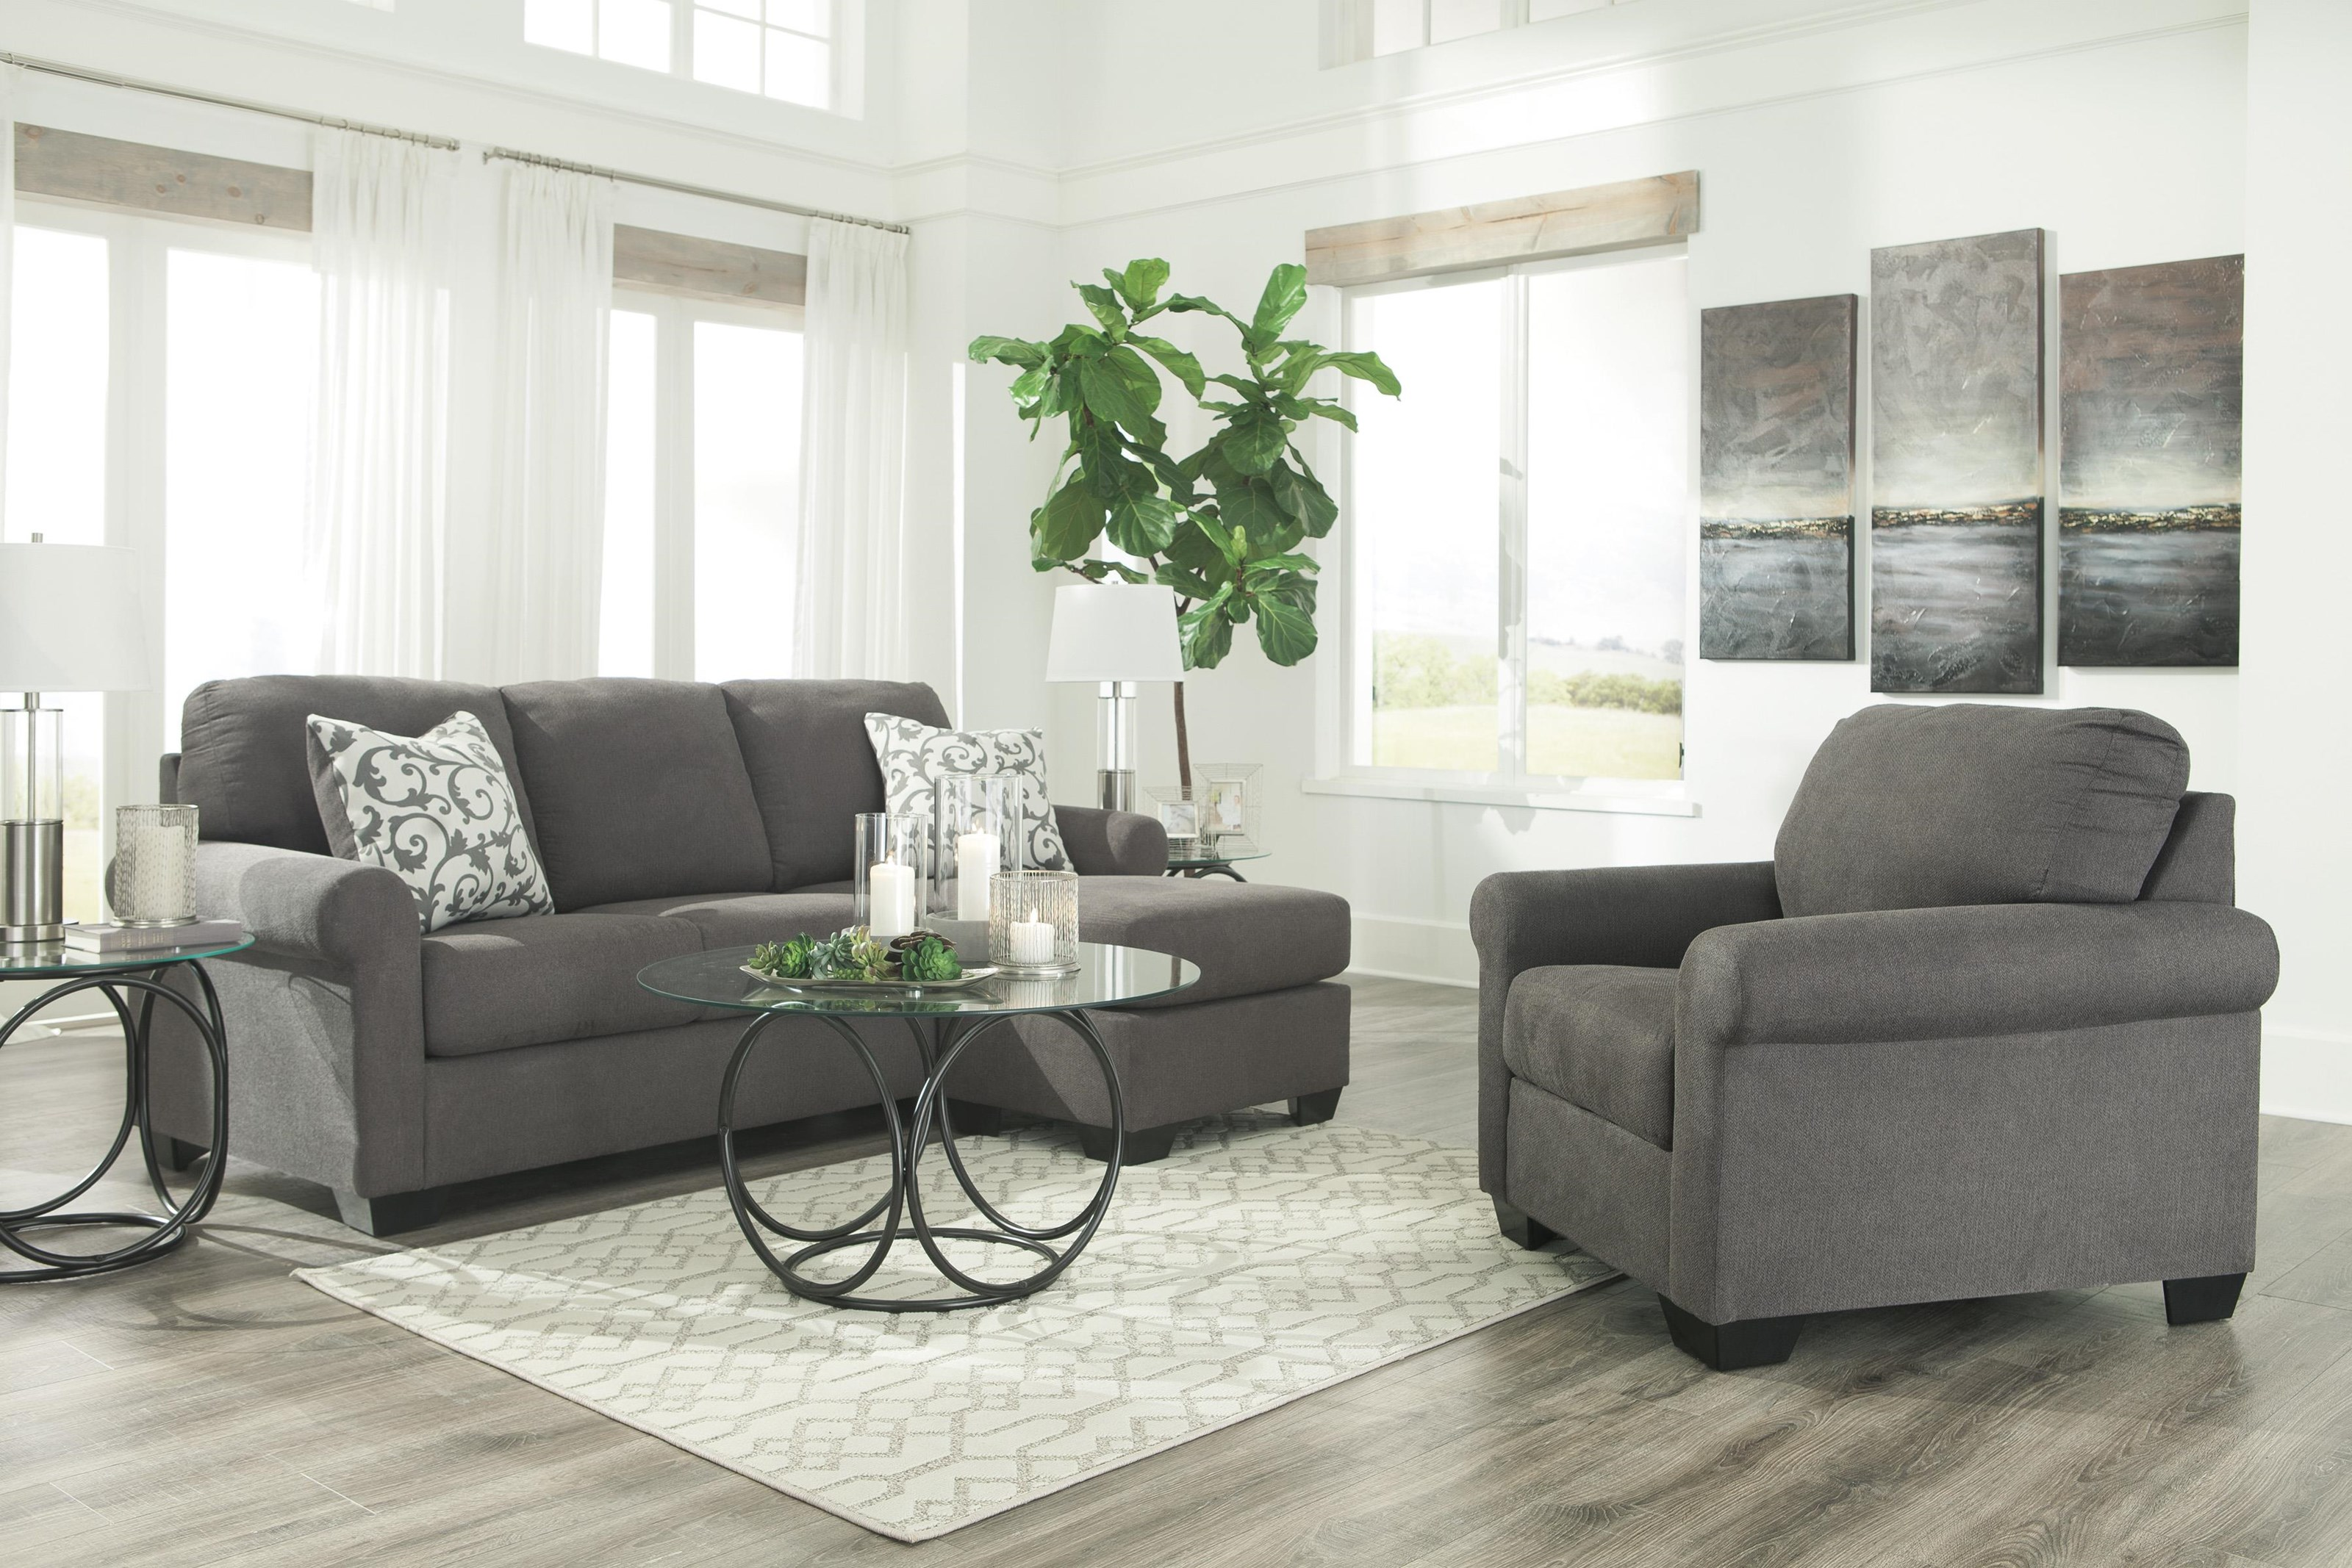 Kexlor Chaise Sofa and Chair Set by Ashley Furniture at Sam Levitz Outlet